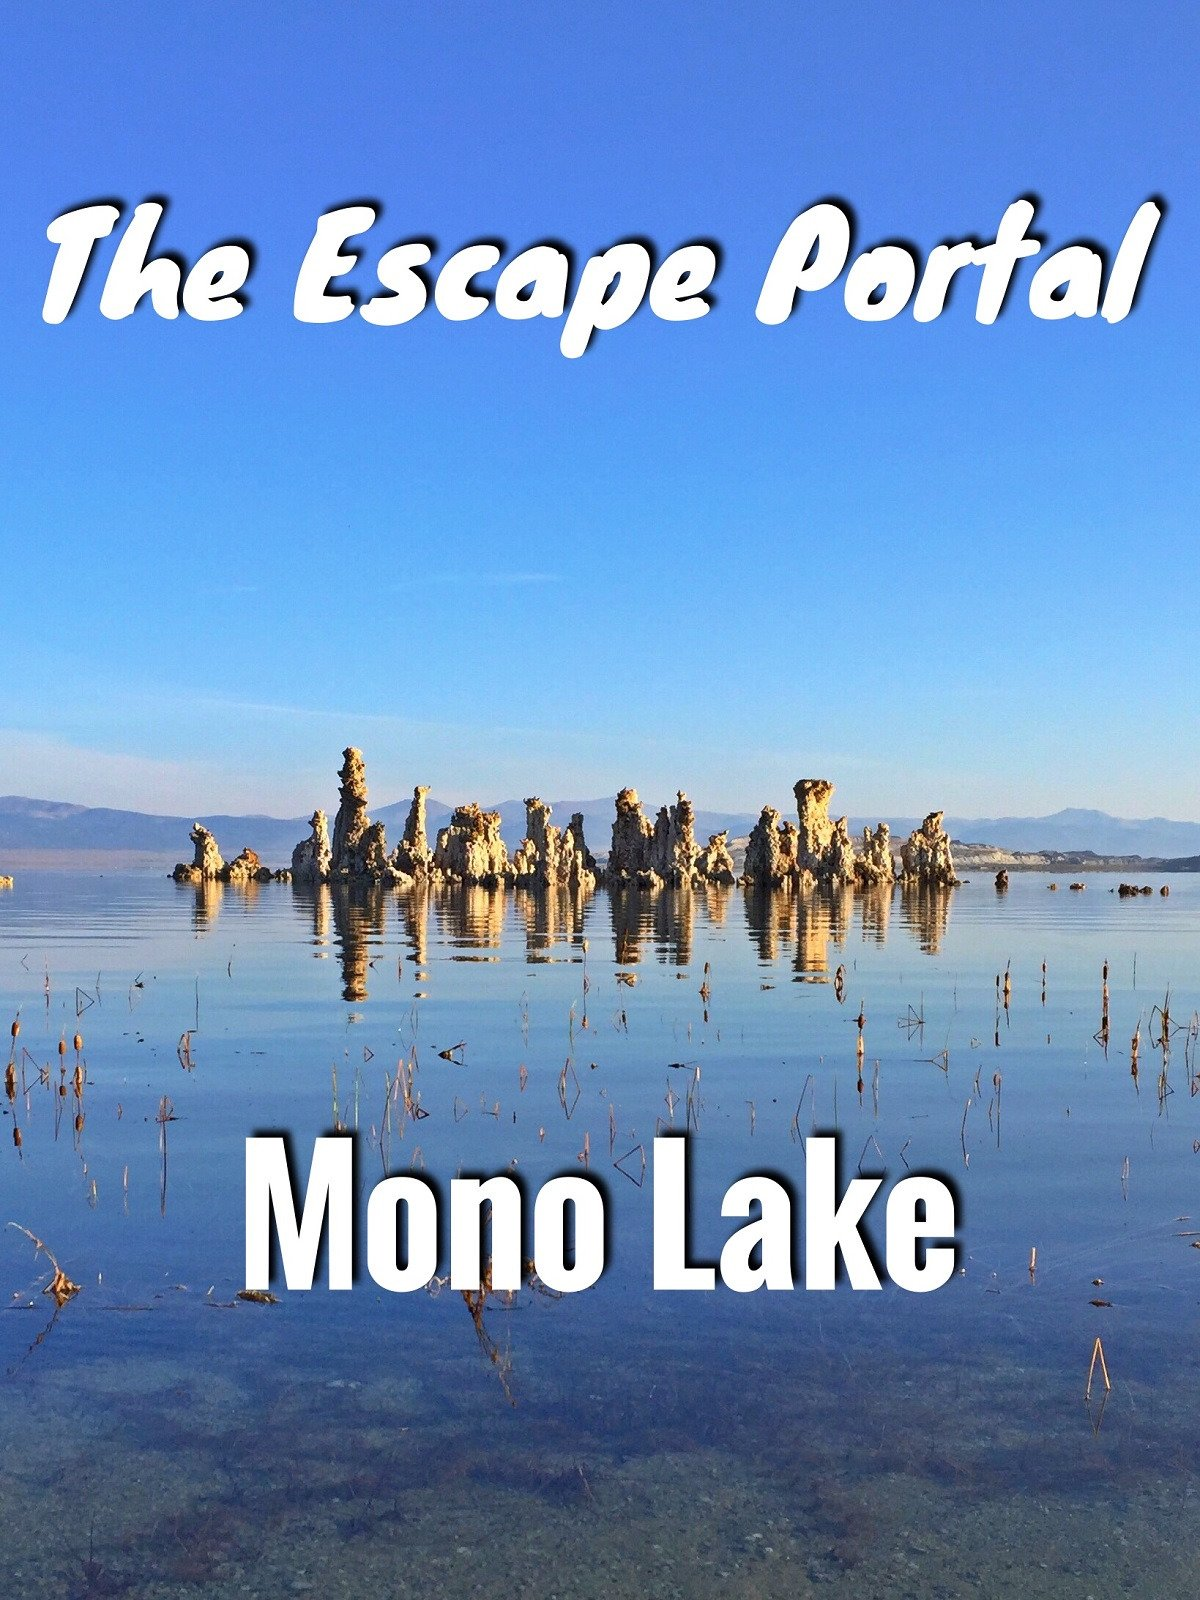 The Escape Portal: Mono Lake